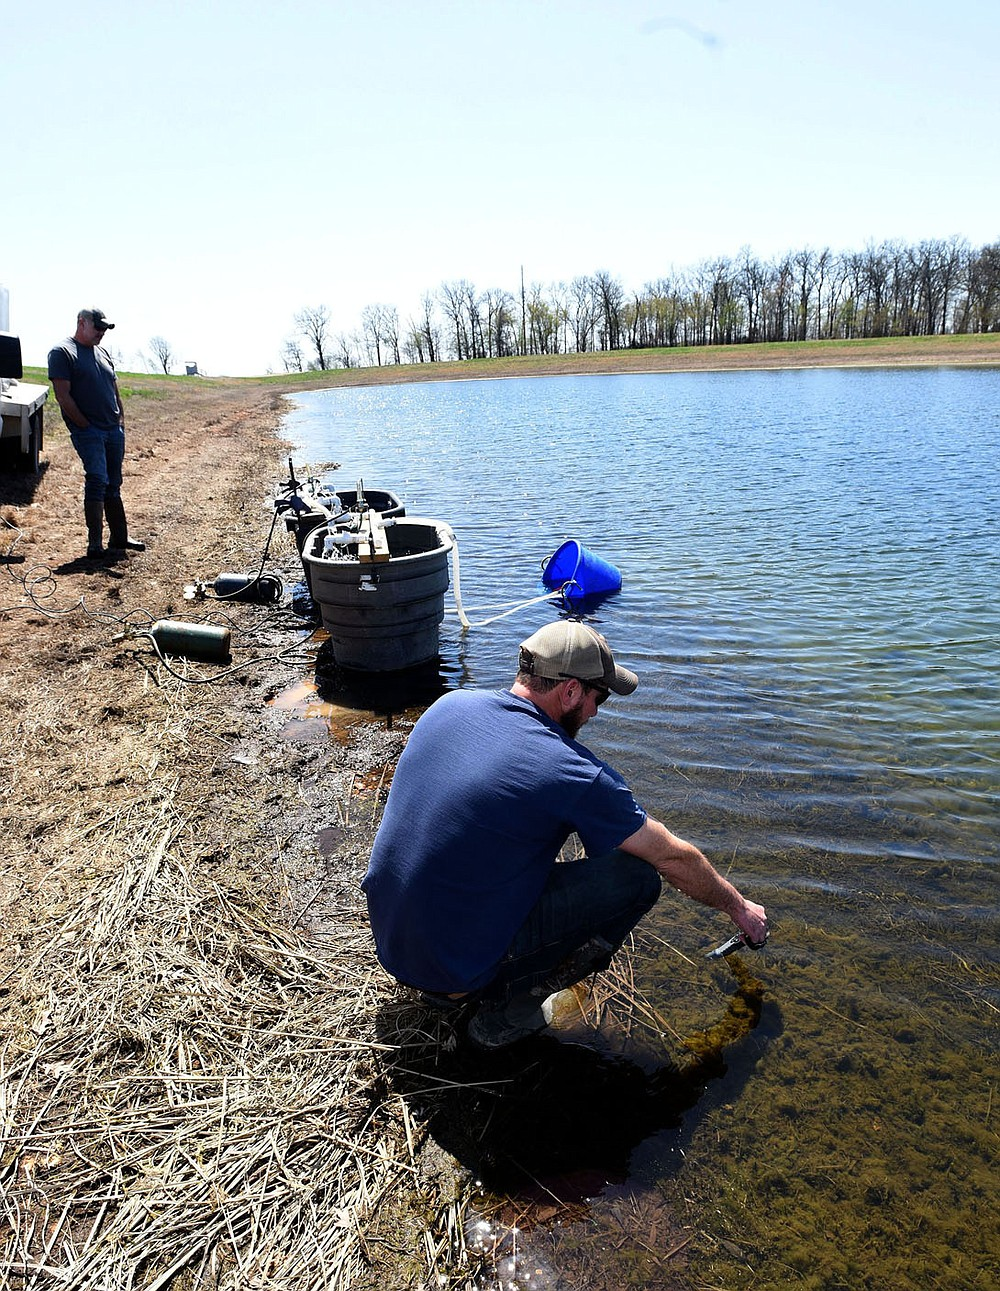 Hatchery workers, including manager Joe Adams (right), transfer walleye fry into a pond at the hatchery. The walleye will grow into fingerlings about two inches long. Then they'll be transported and stocked at Beaver and other lakes. (NWA Democrat-Gazette/Flip Putthoff)